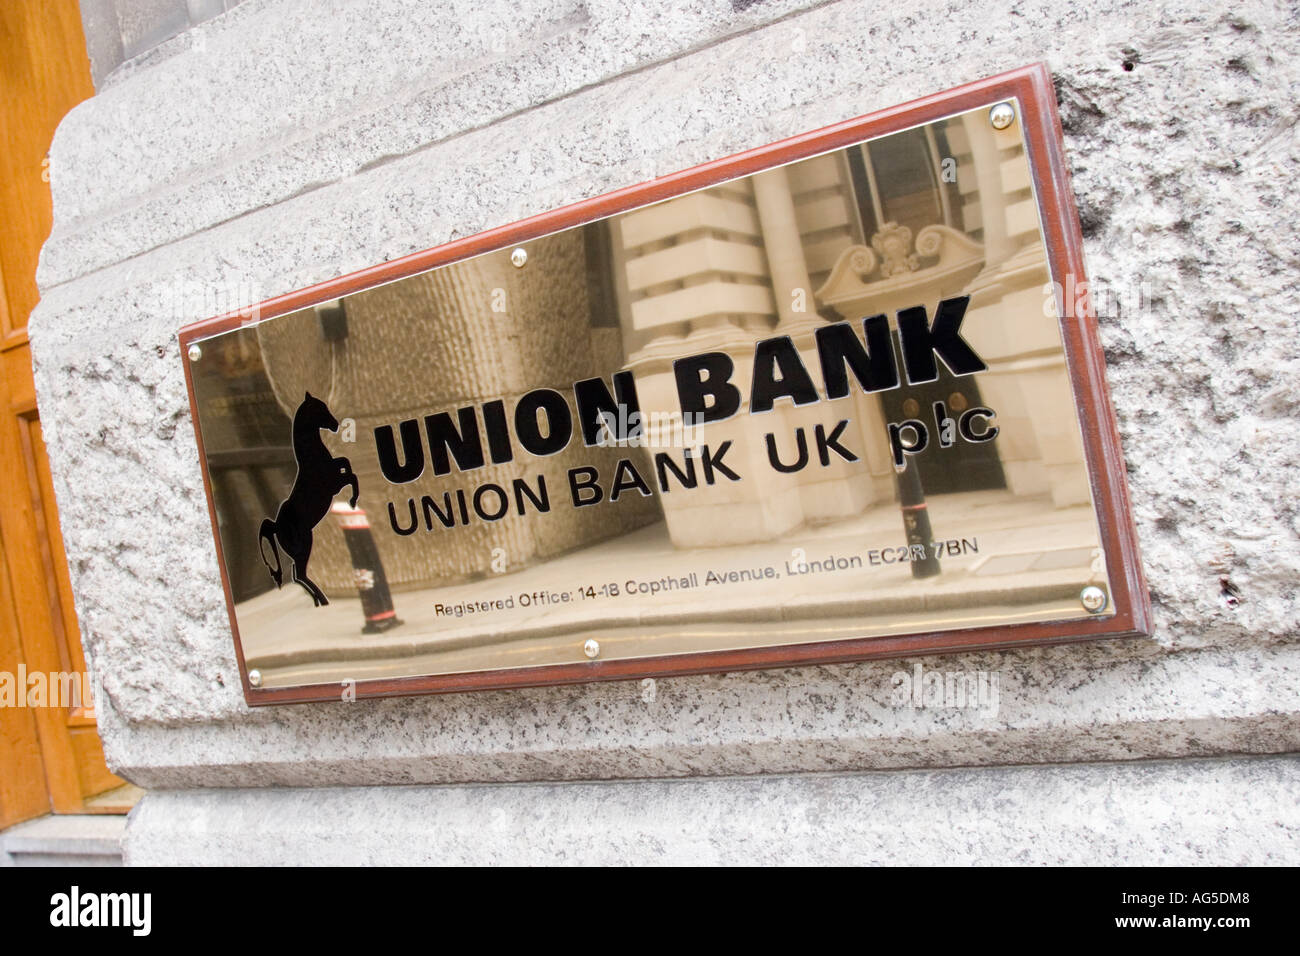 Union Bank UK plc brass plate outside offices in Copthall Avenue in the City of London GB UK - Stock Image